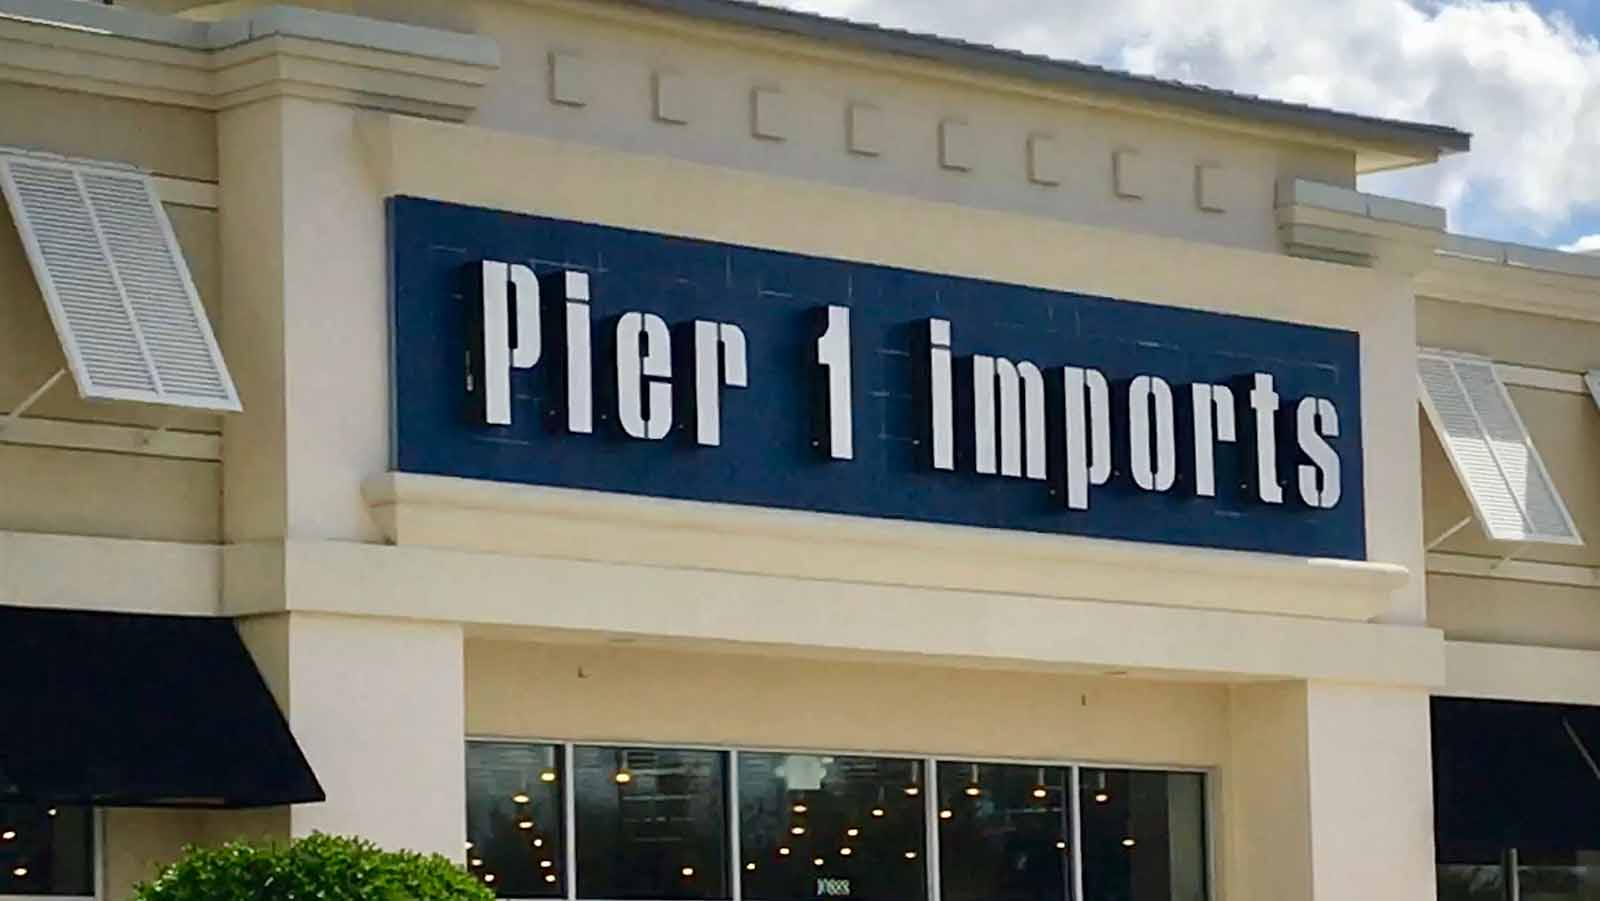 Lucky's Supermarkets, Pier 1 Imports, and more are not reopening thanks to the pandemic killing their business. Read the full list of closing businesses.